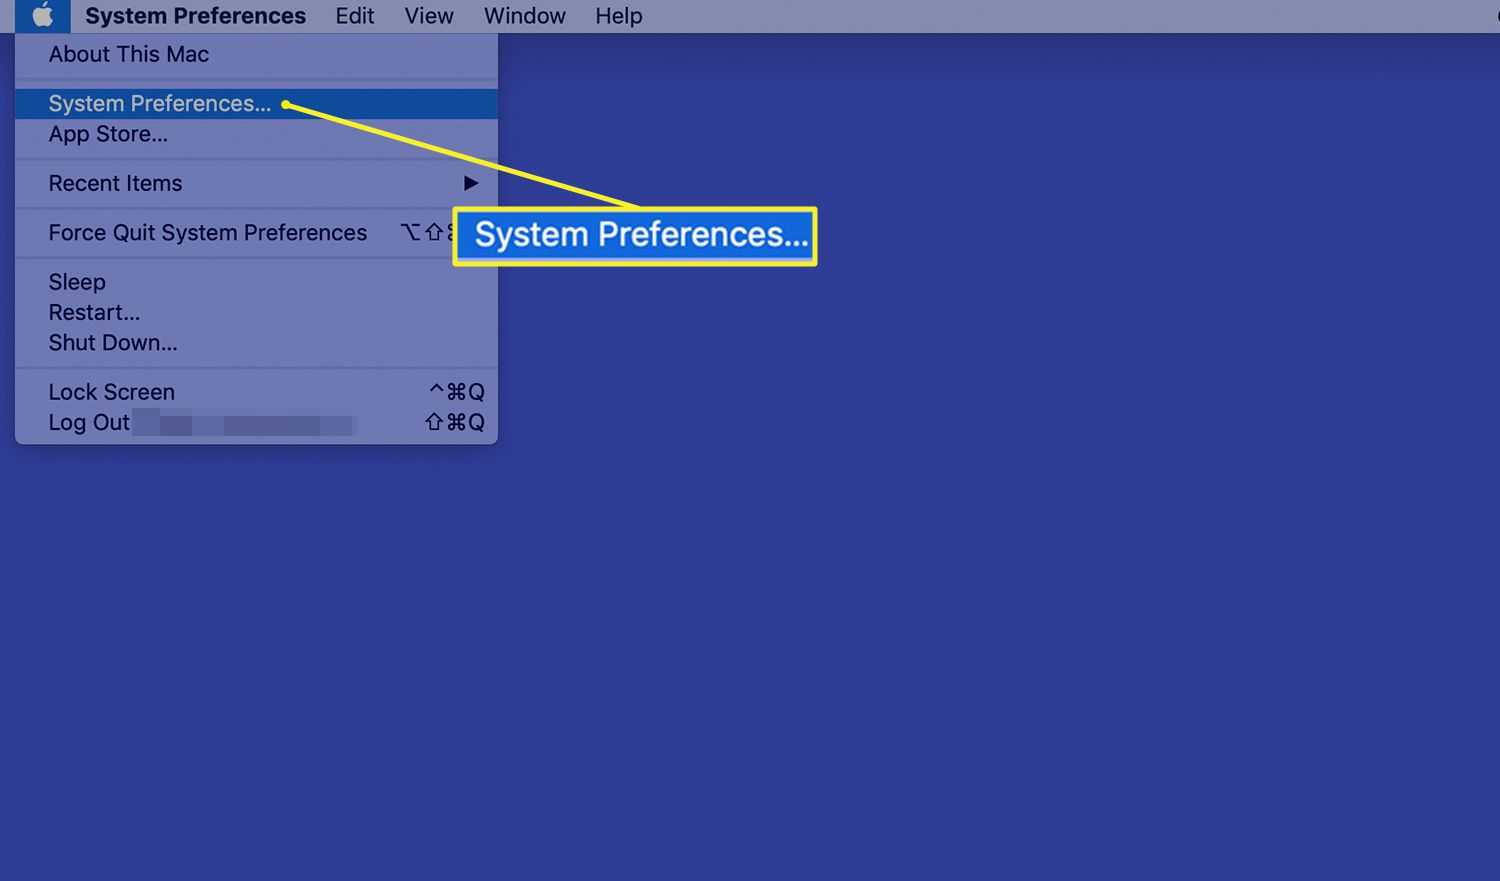 Mac System Preferences selected in the Apple menu